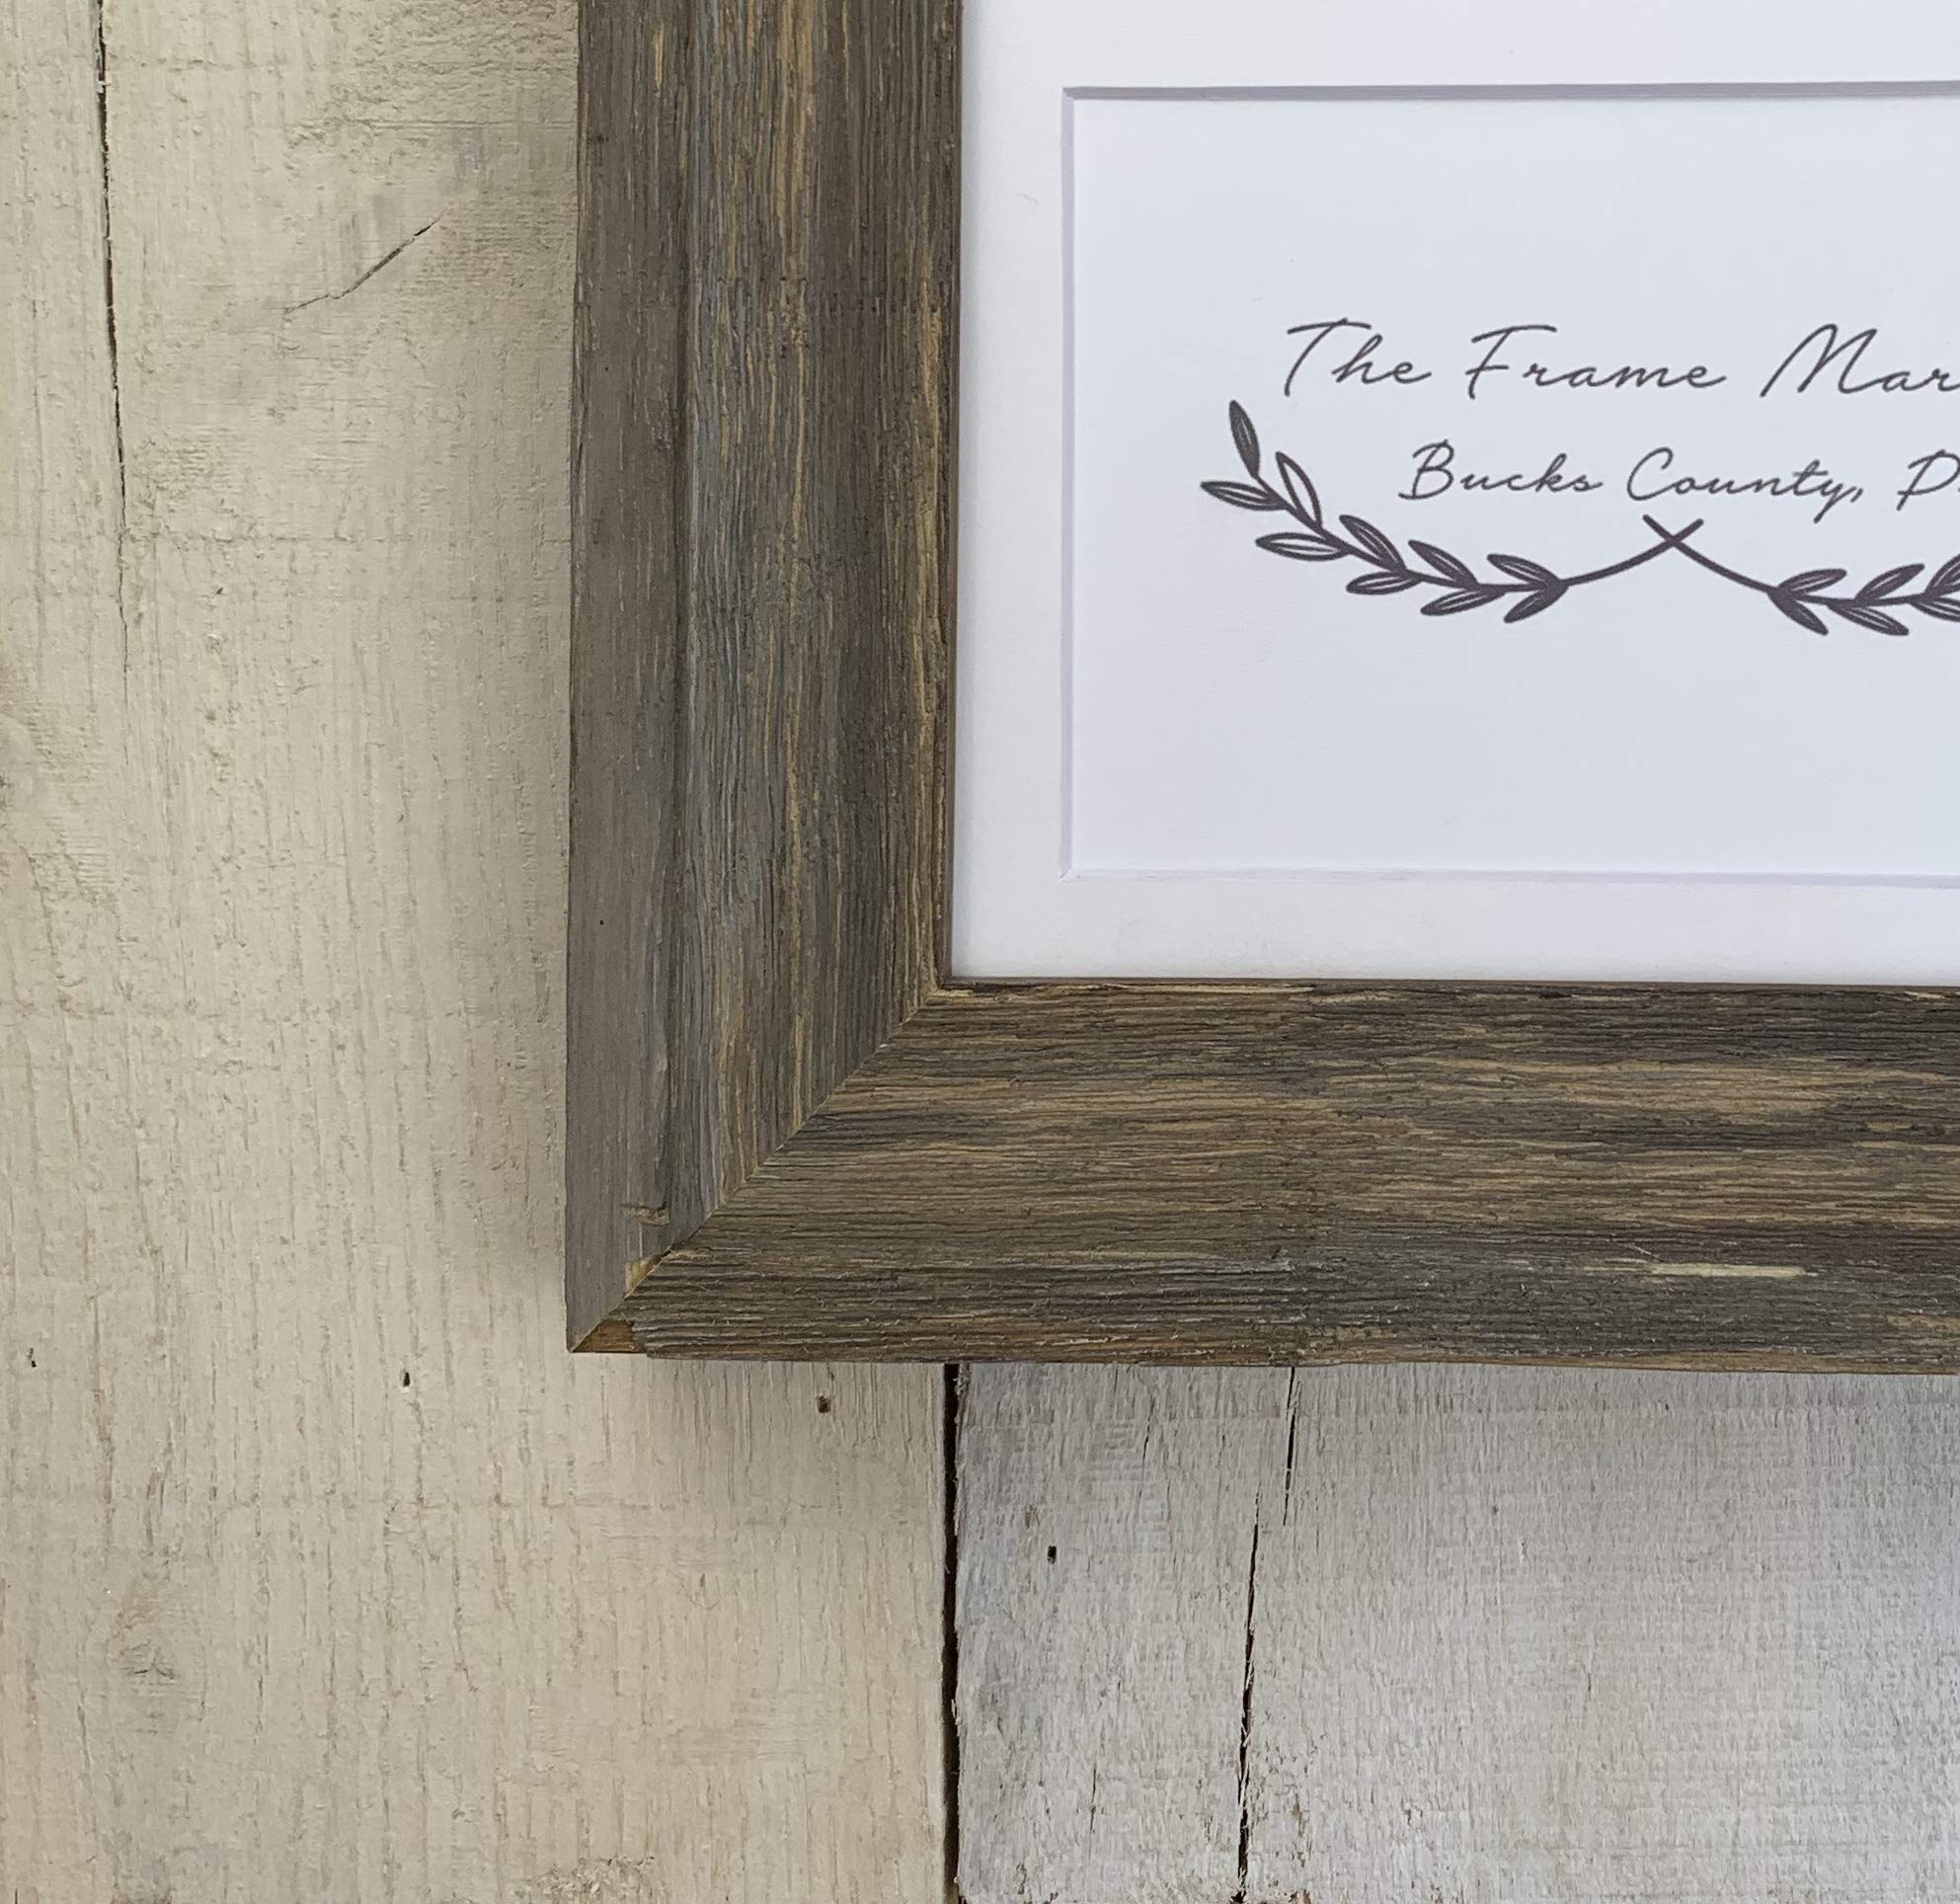 Bucks County Barnwood Picture Frame 8x10, 9x12, 11x14, 14x16, 16x20 Standard and custom sizes available. by TheFrameMarket